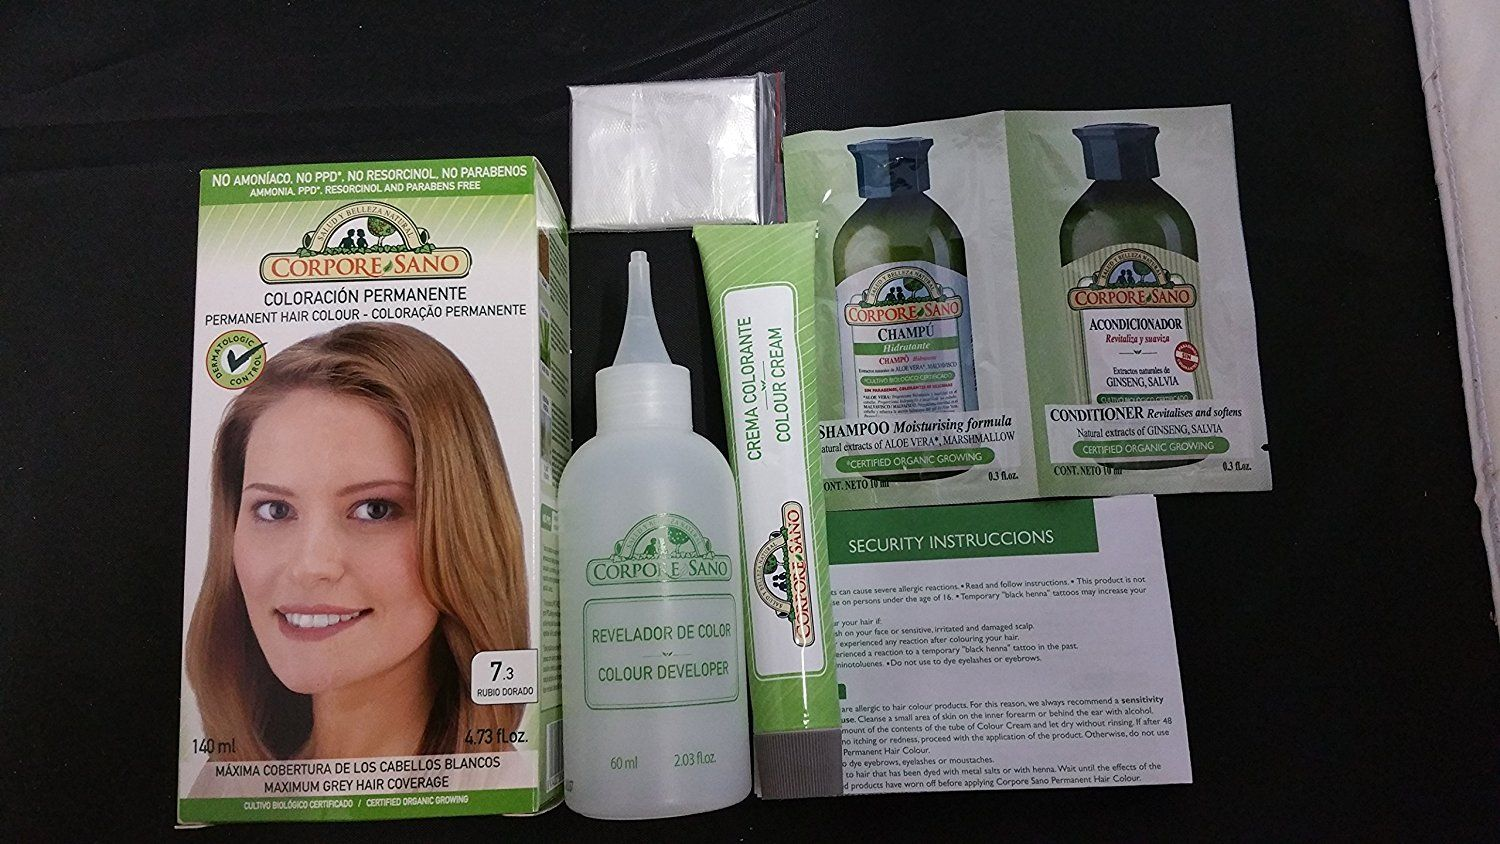 Corpore Sano Permanent Hair Color Does Not Contain Ppd Ammonia